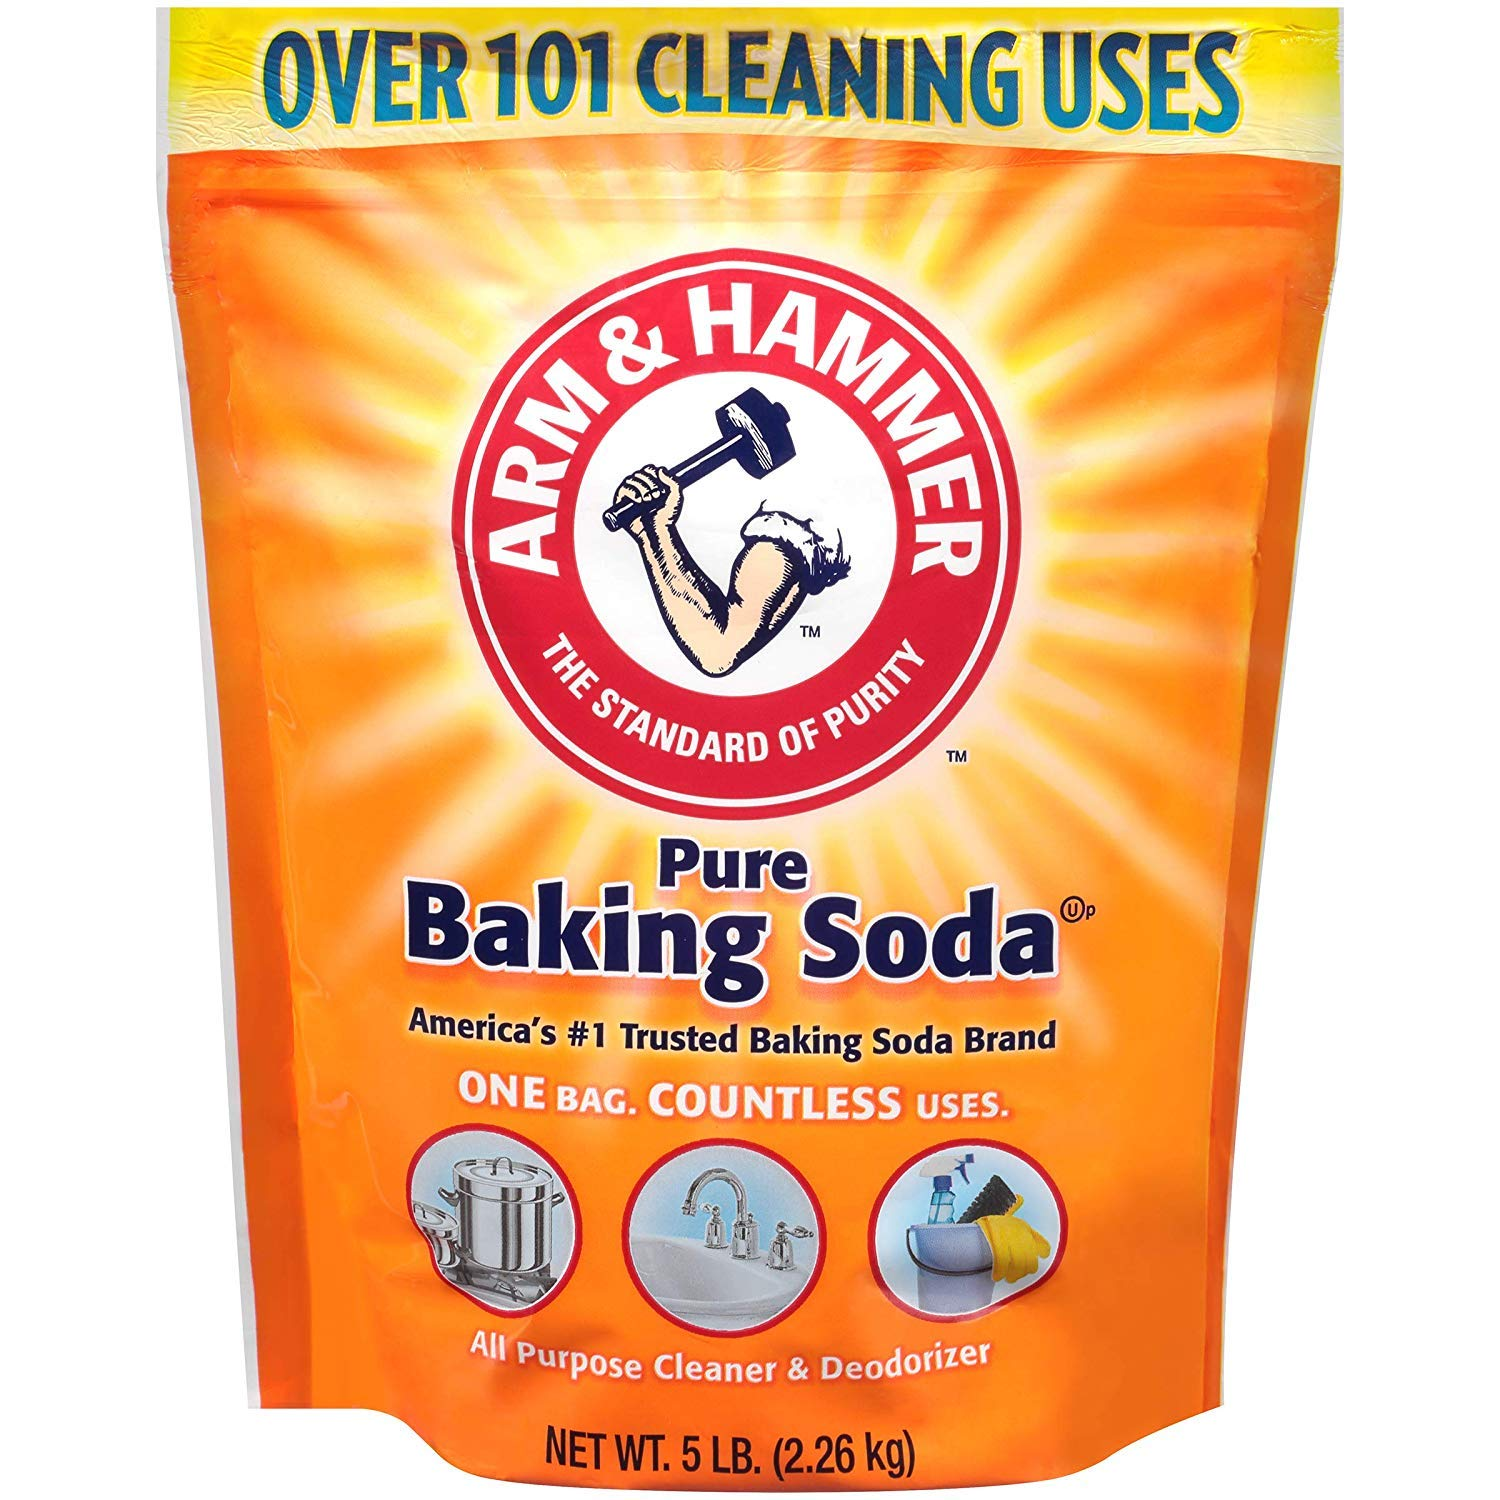 Arm & Hammer Gdgf Baking Soda, 5 Lbs, 2 Pack by Arm & Hammer (Image #1)